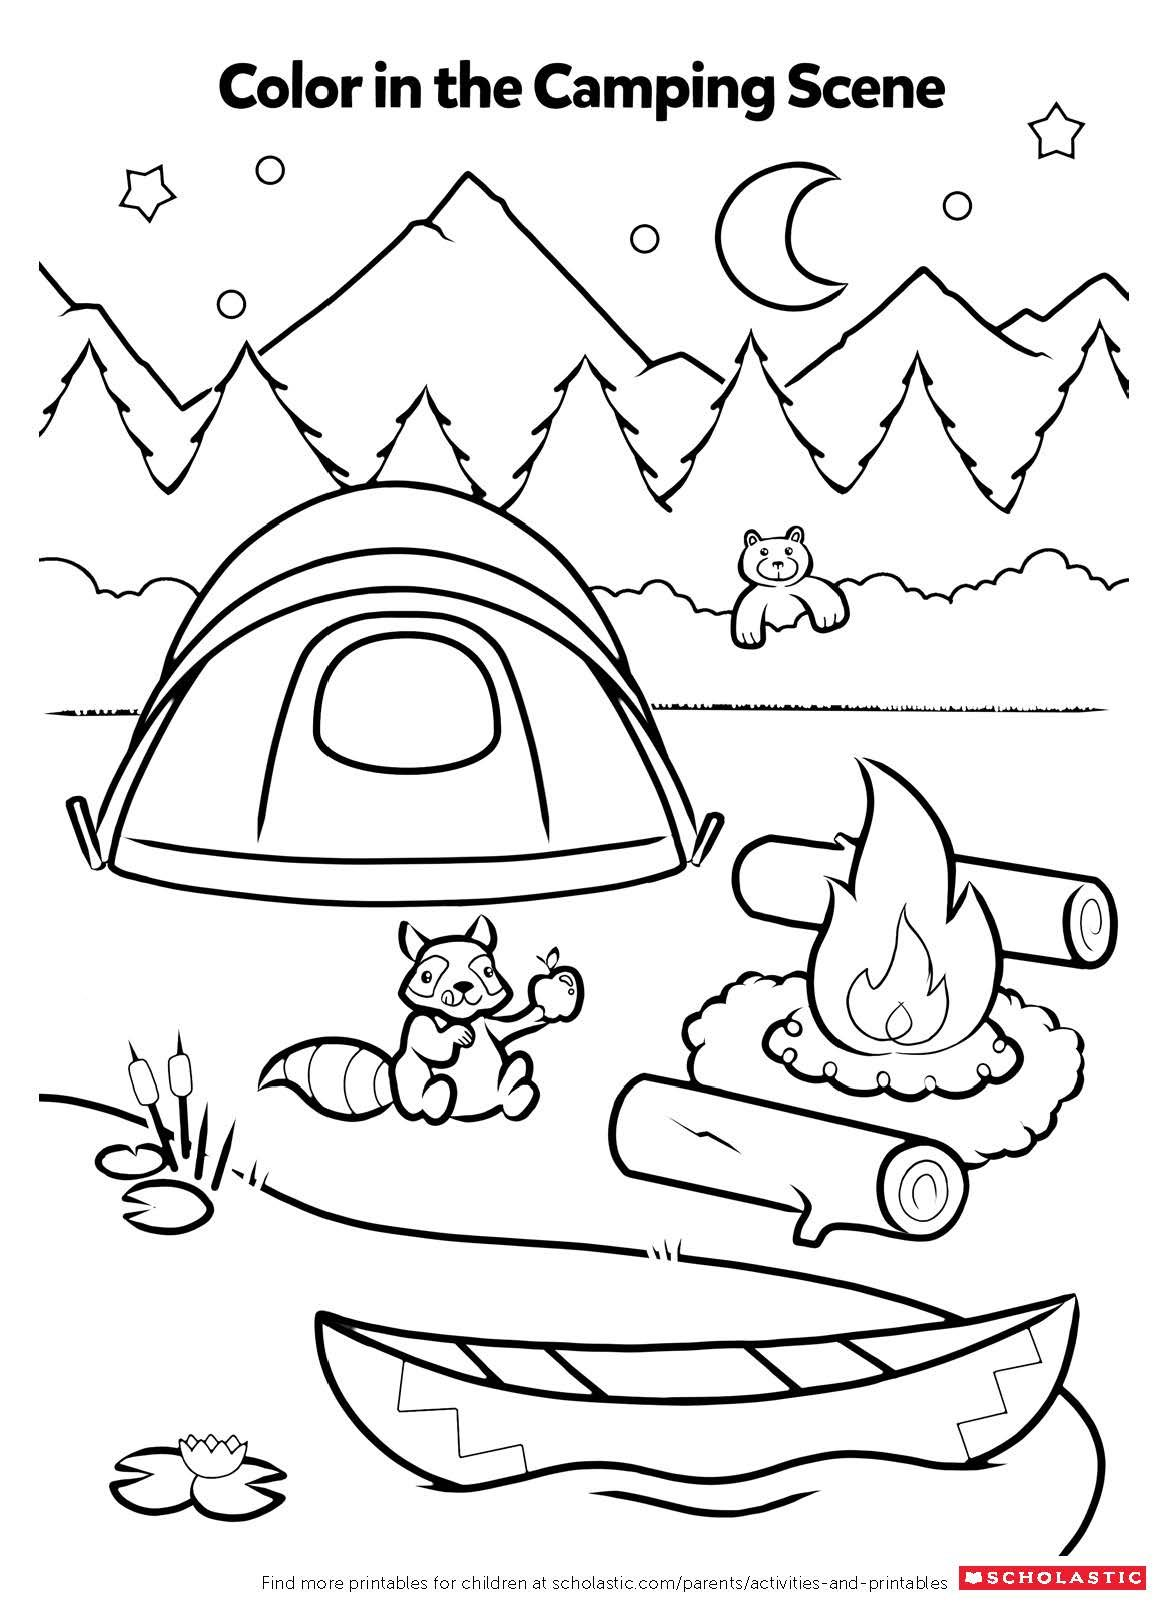 free printable coloring pages for kids camping free coloring and reading page summer fun camping with kids printable pages coloring for camping free